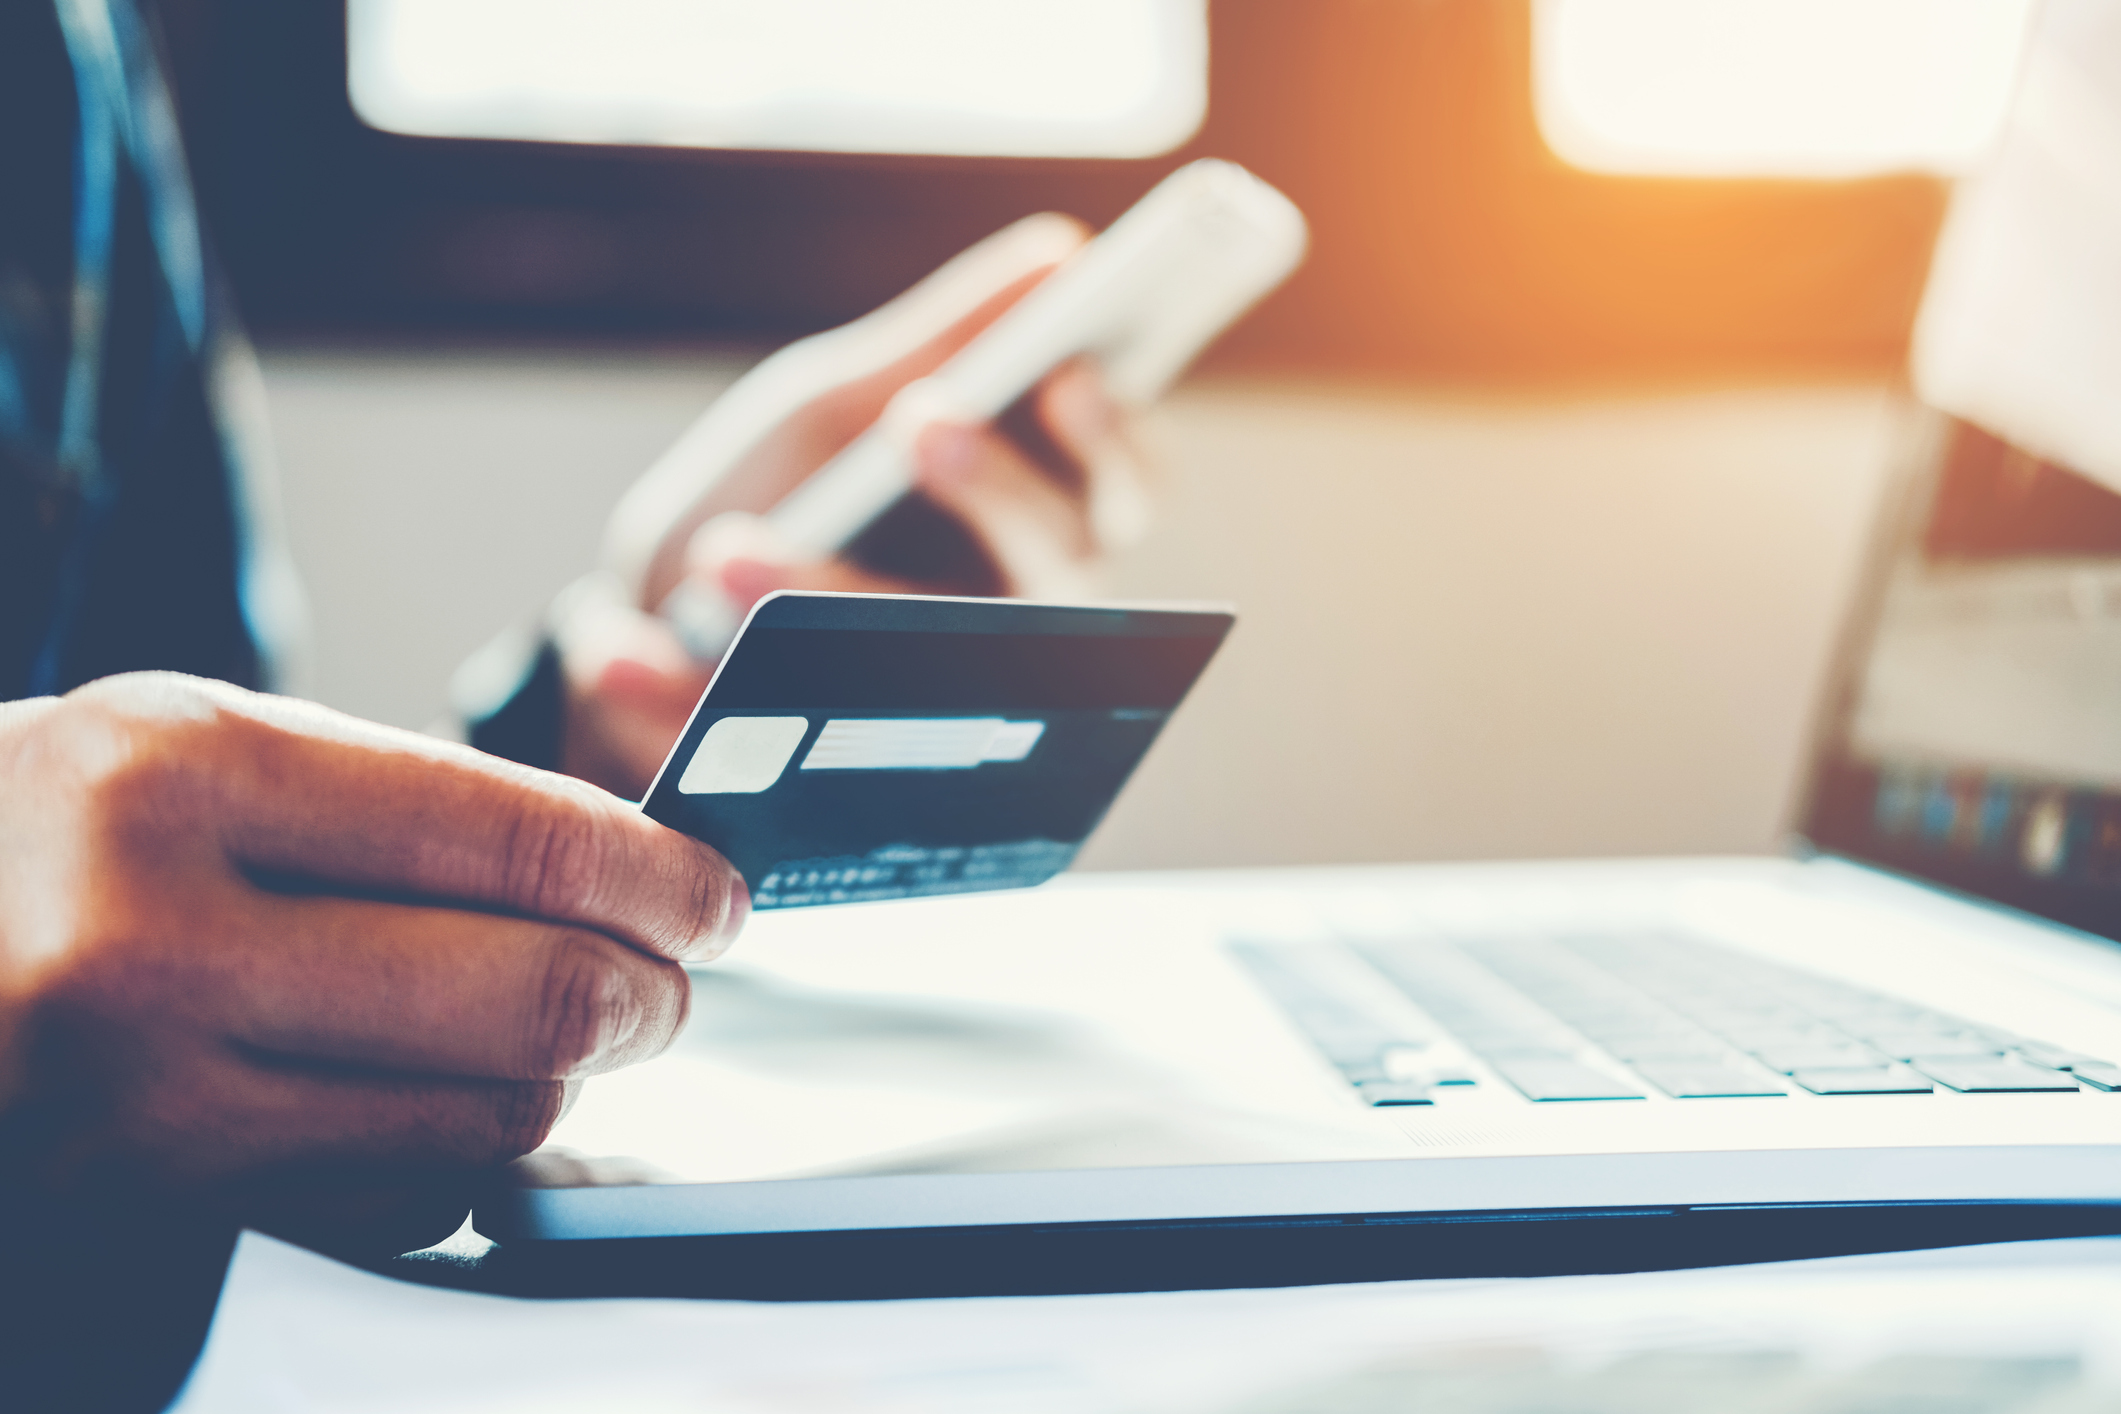 Man Holding Credit Card And Using Cell Phone holding credit card with shopping online